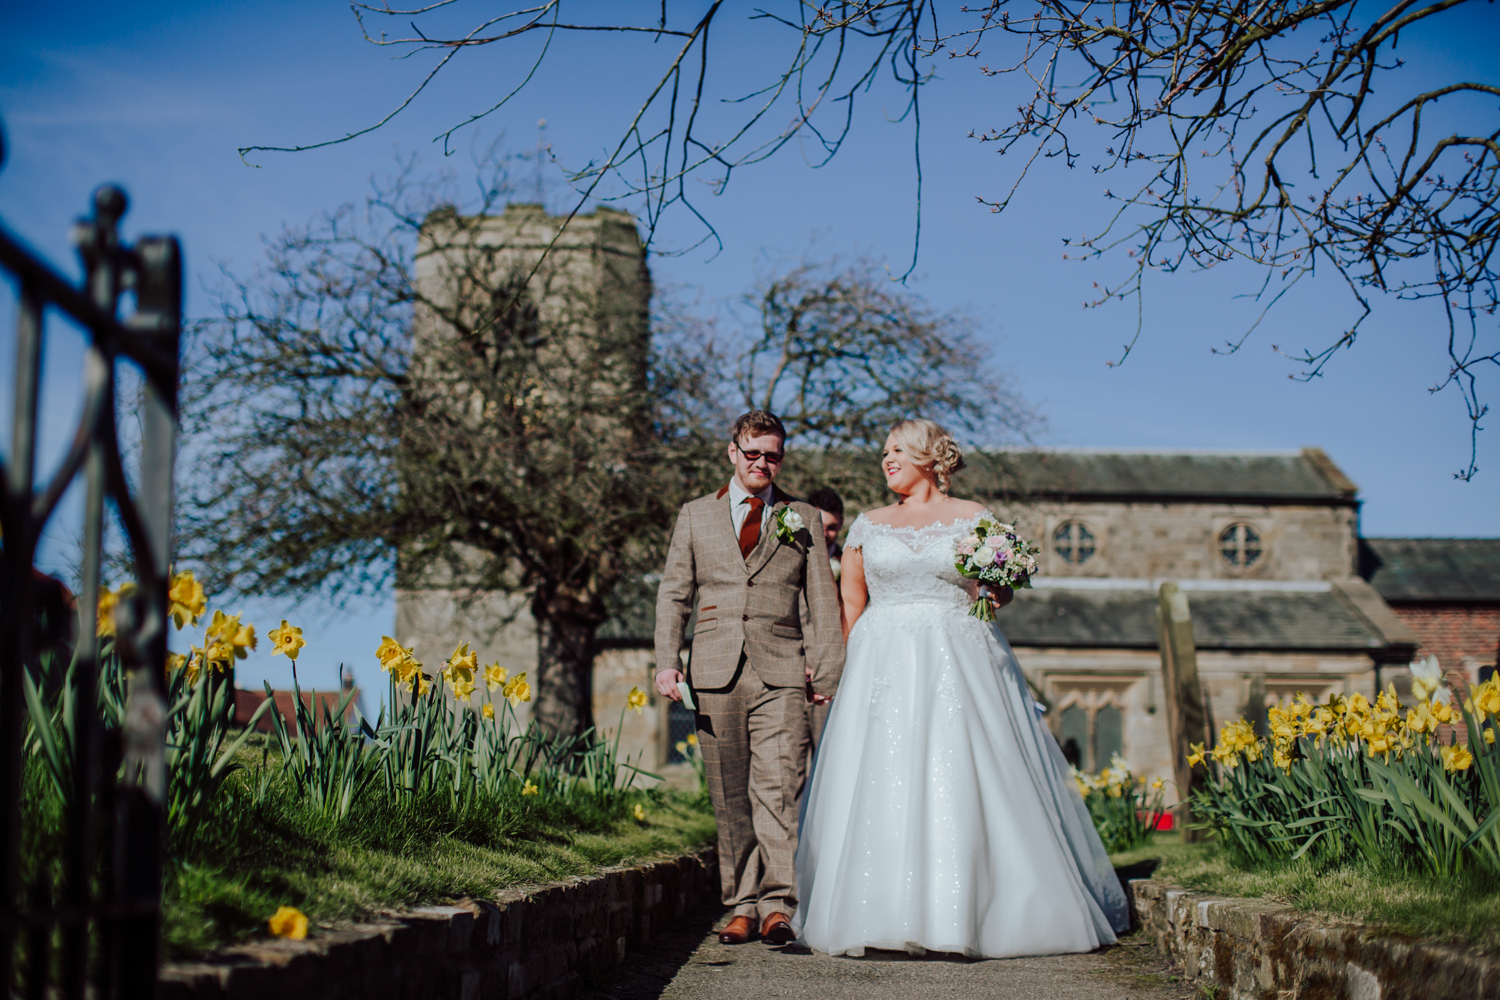 Yorkshire quirky wedding photographers sheffield-37.jpg